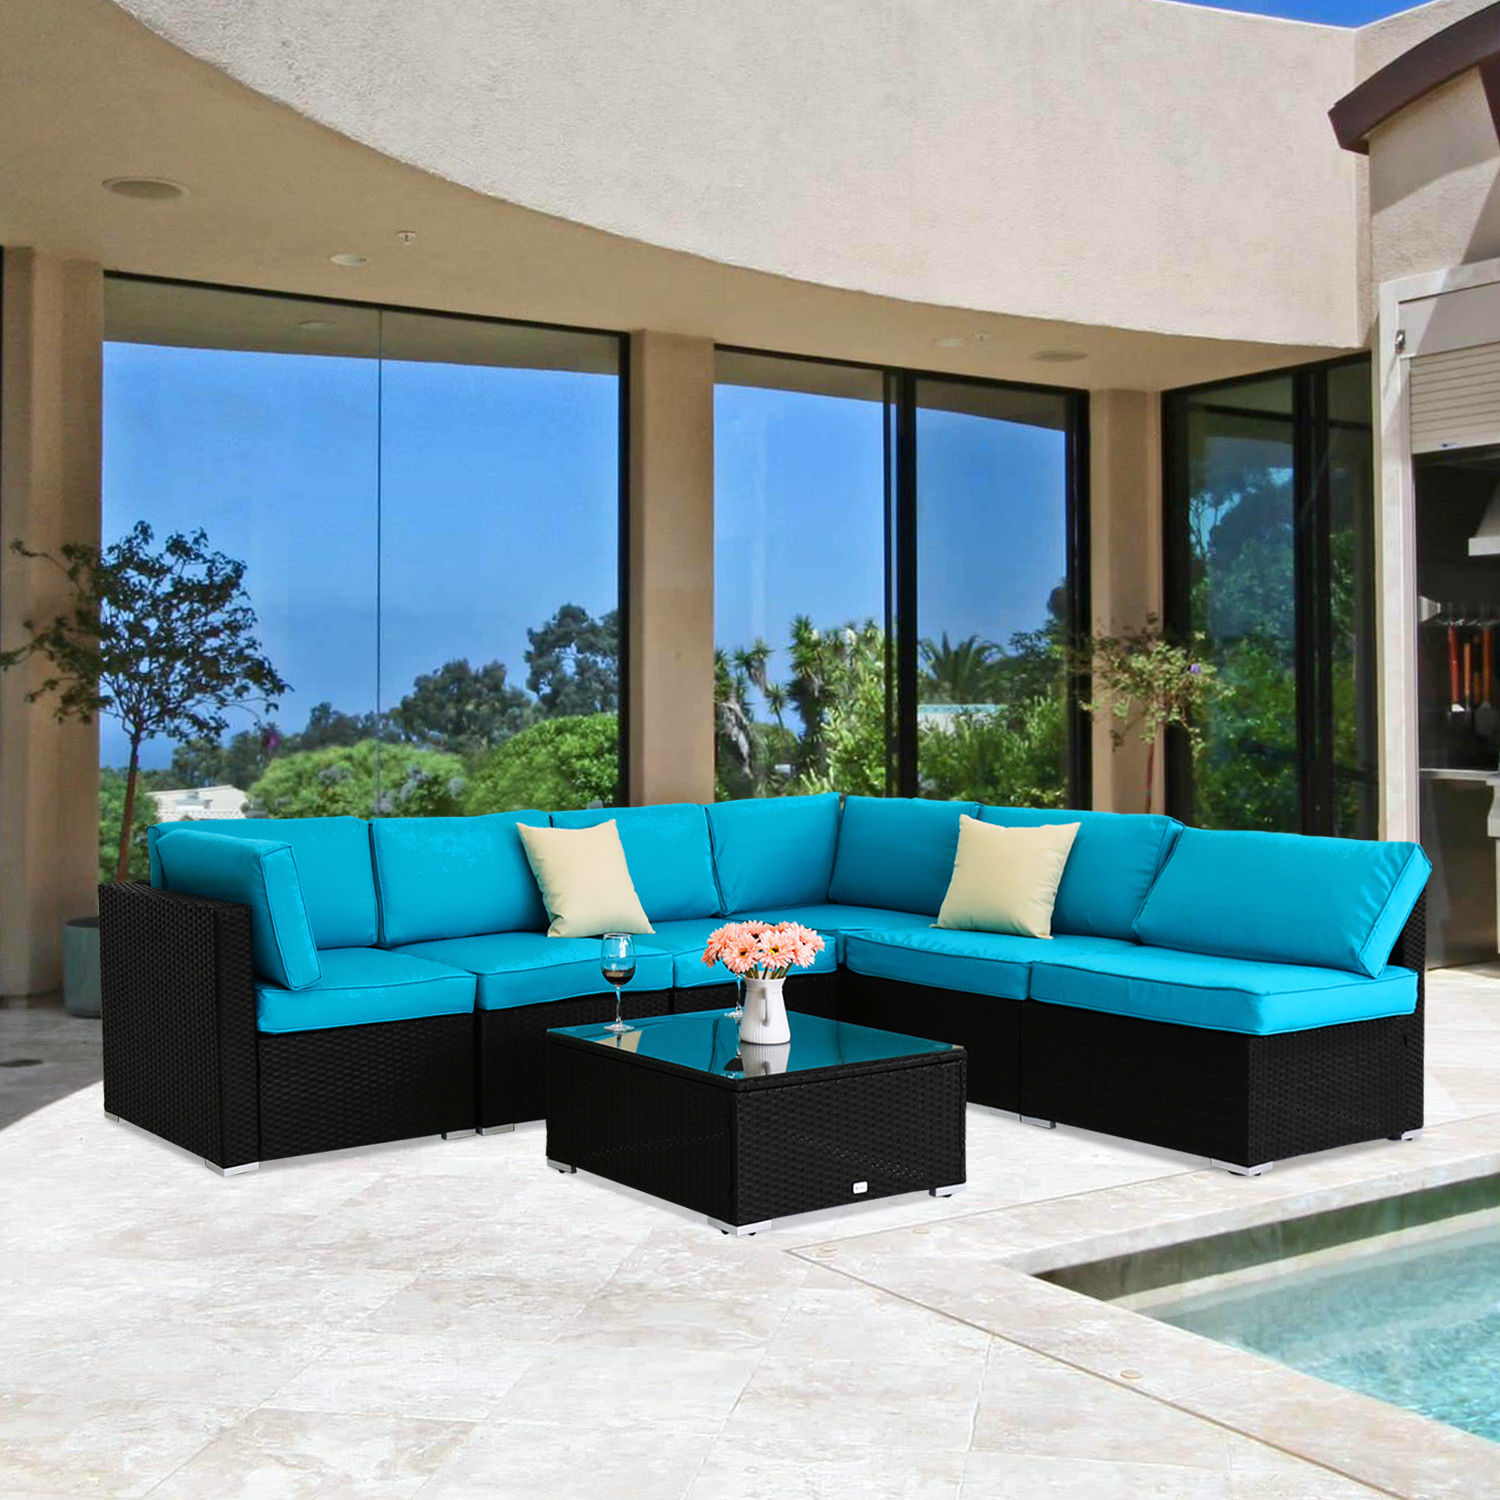 Kinbor 7pcs Outdoor Patio Furniture Sectional Pe Wicker Rattan Sofa Set by Kinbor